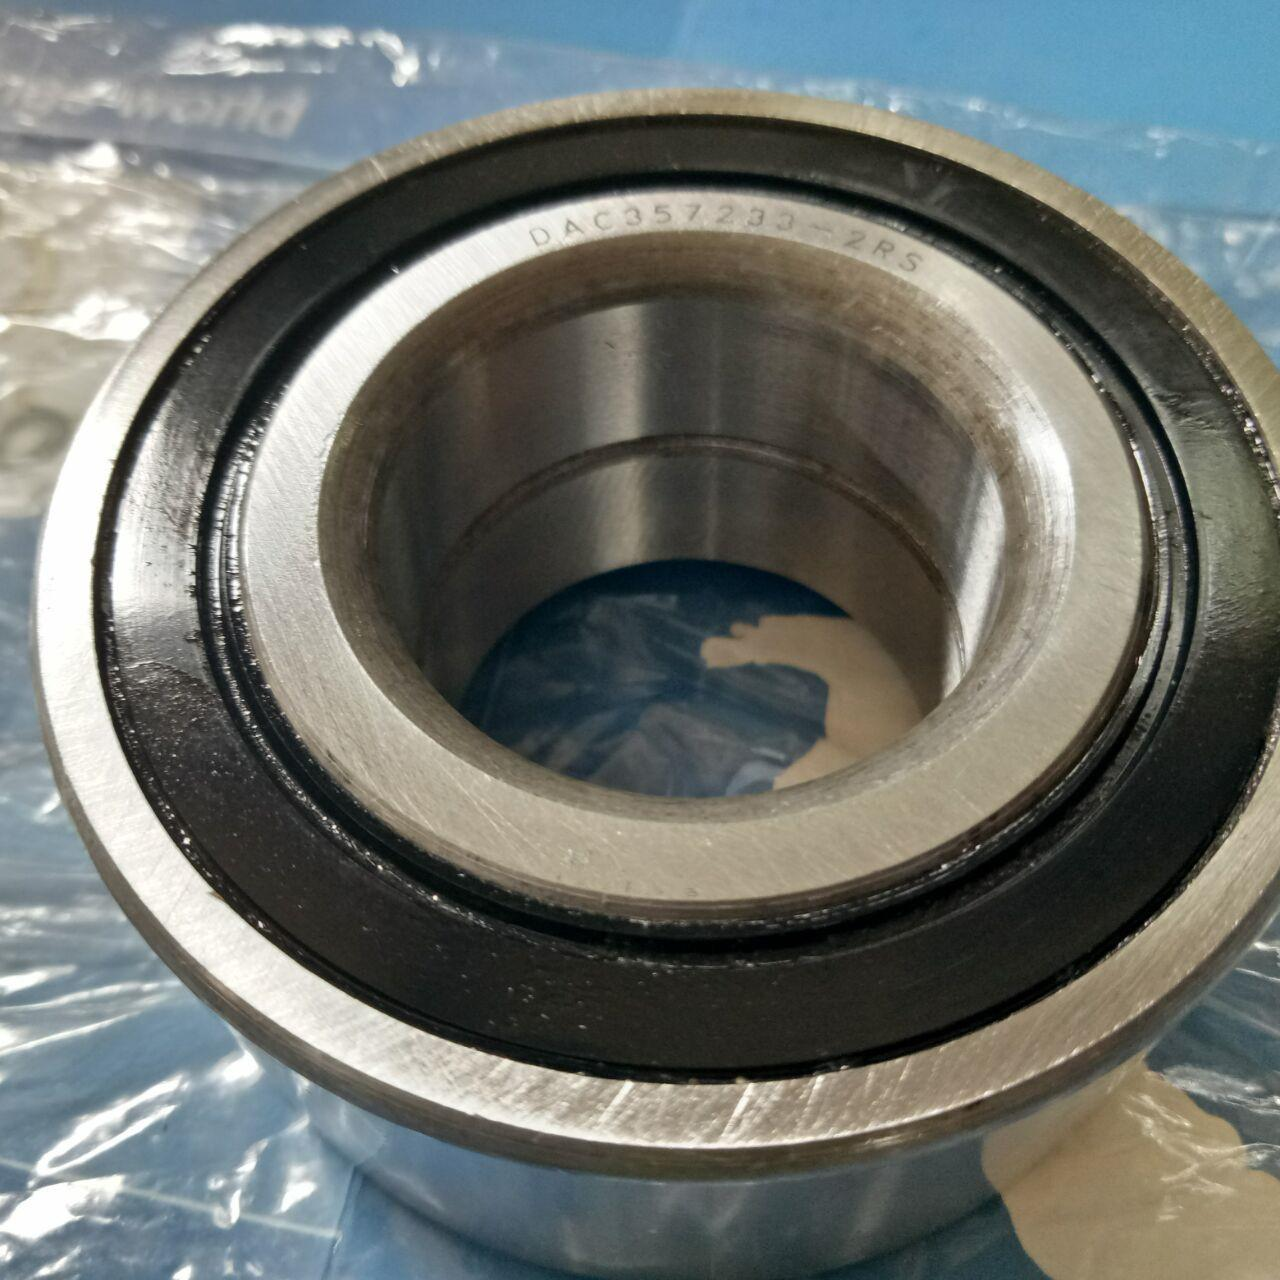 Wholesale Hub bearing /wheel bearing DAC357233-2RS  Size:35*68*30mm made by China bearing factory from china suppliers